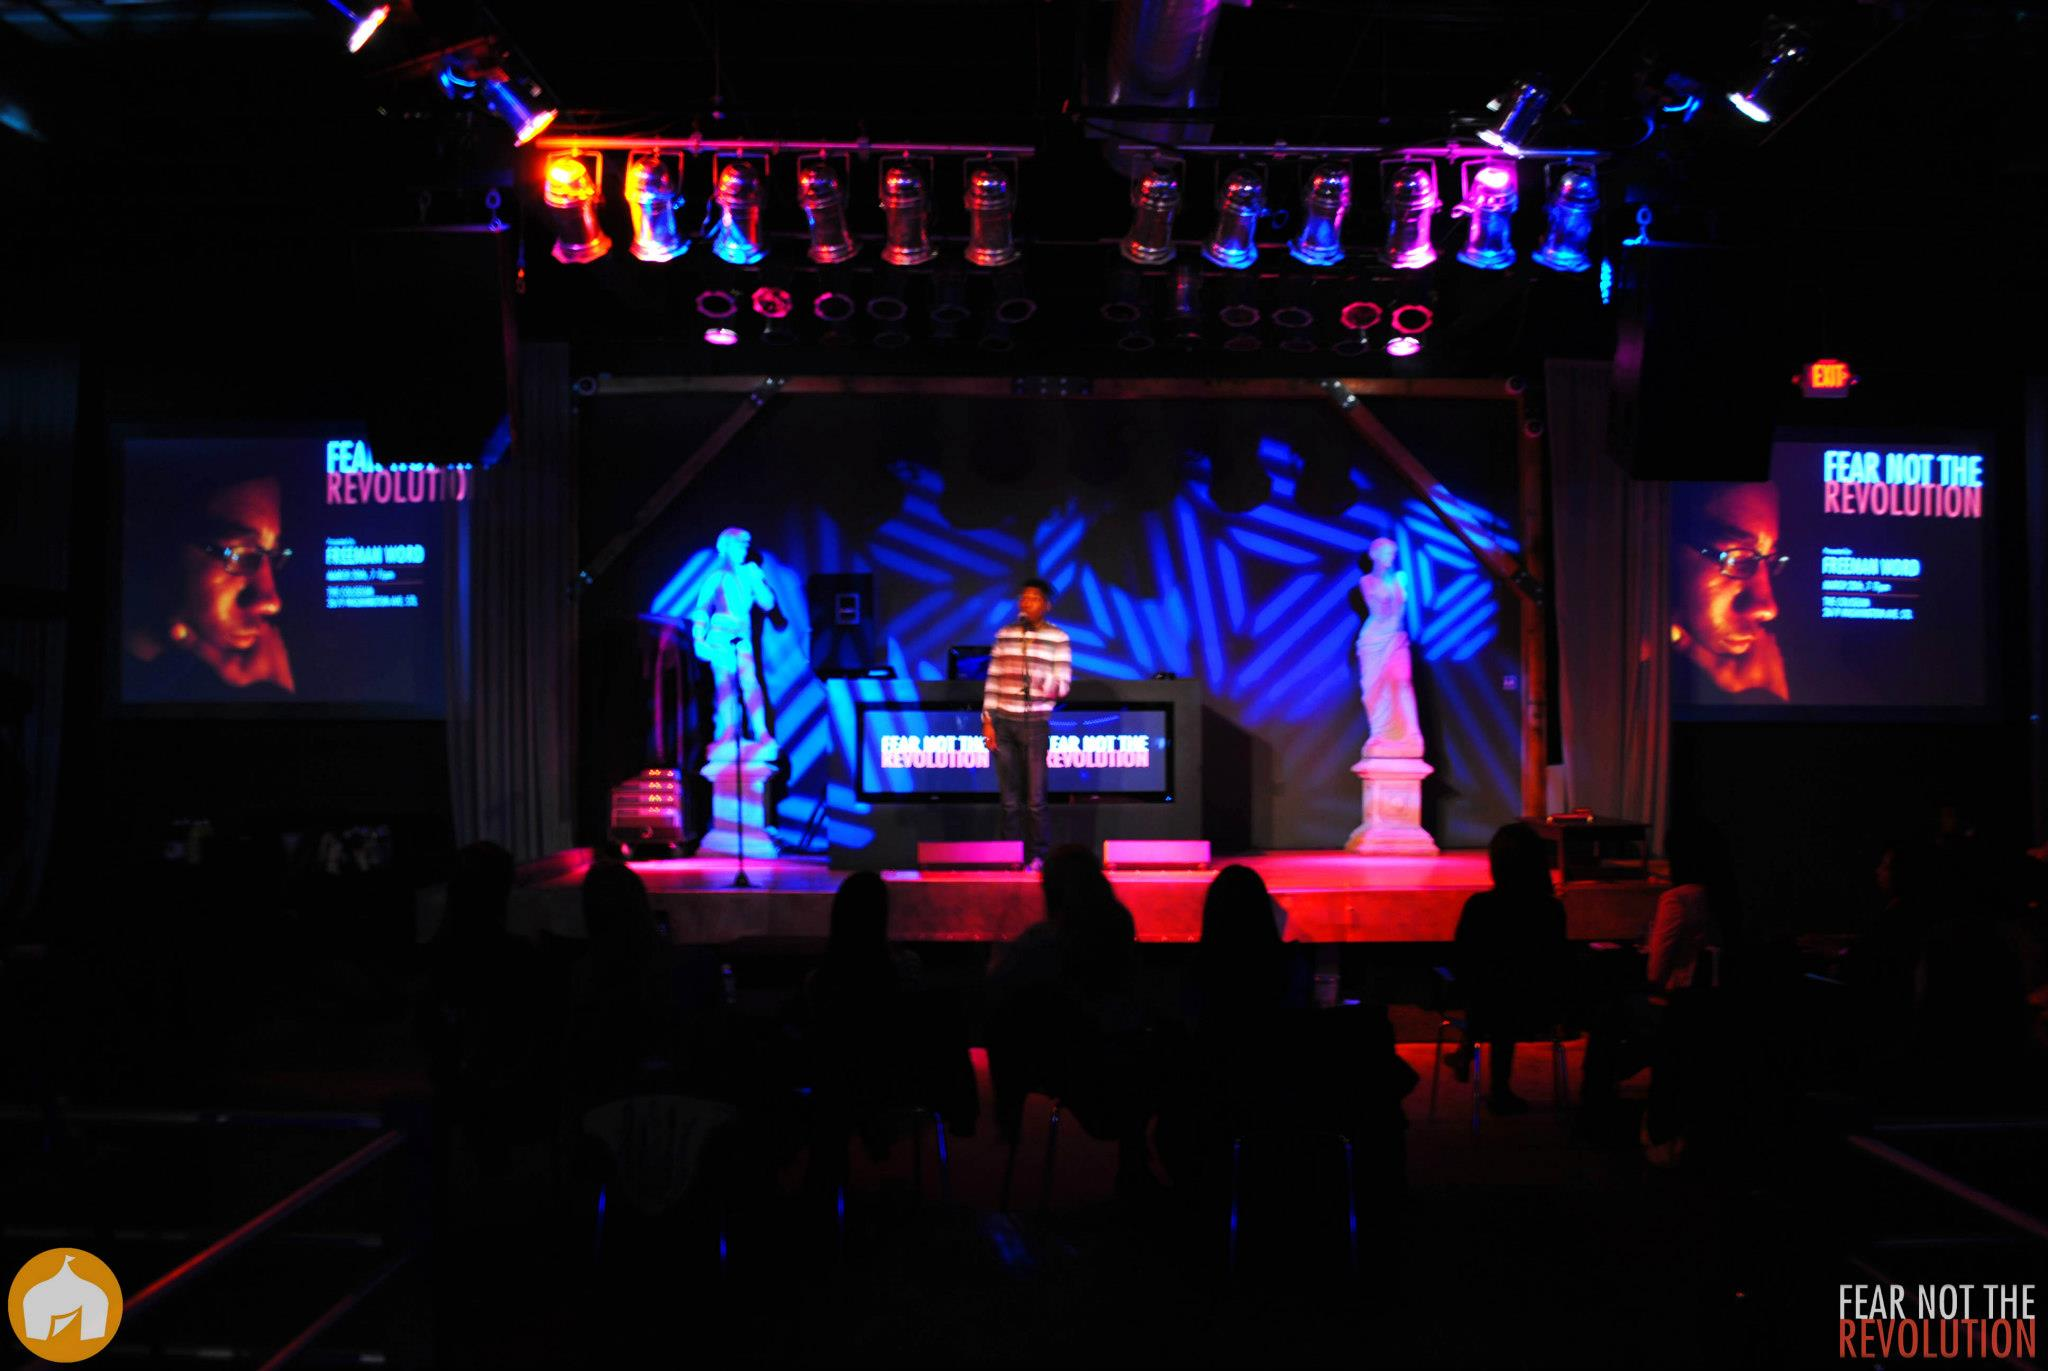 *Image of my performance/stage setup for Fear Not The Revolution - over 100 people attended to hear poetry on a Wednesday night at the Coliseum. In lieu of a senior thesis, I decided to produce, promote, and headline my own poetry show. Community activists Zaki Baruti, Melvin White, and Olajuwon Ali gave speeches. Artists Aimee Le, Gerald Jackson, Loren D, and Louis Conphliction performed.